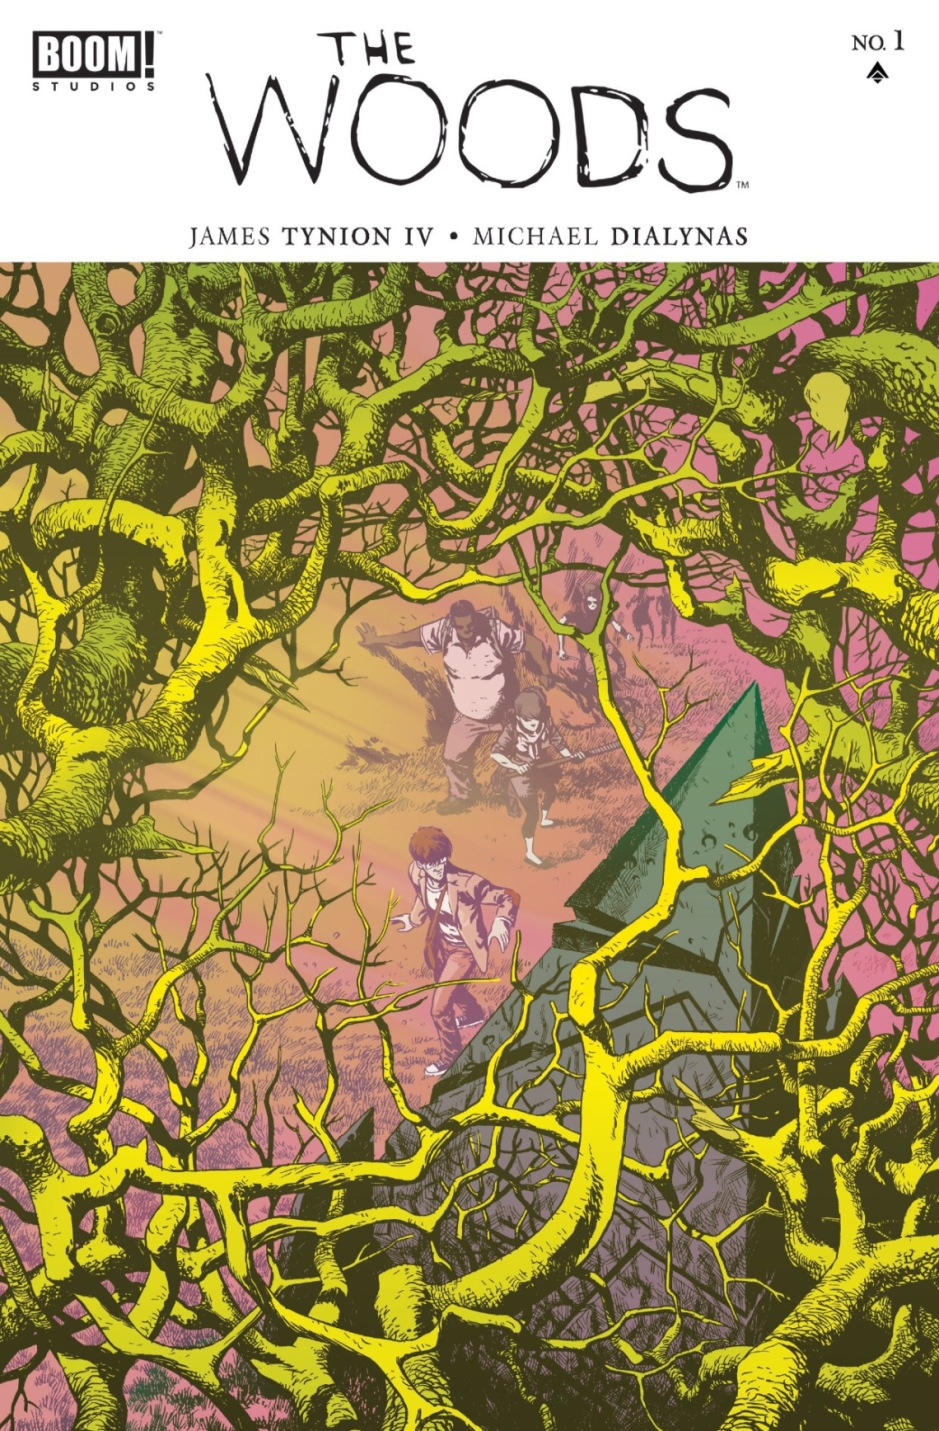 The Woods by James Tynion IV and Michael Dialynas, published by Boom Studios   The Black Lion Journal   The Black Lion